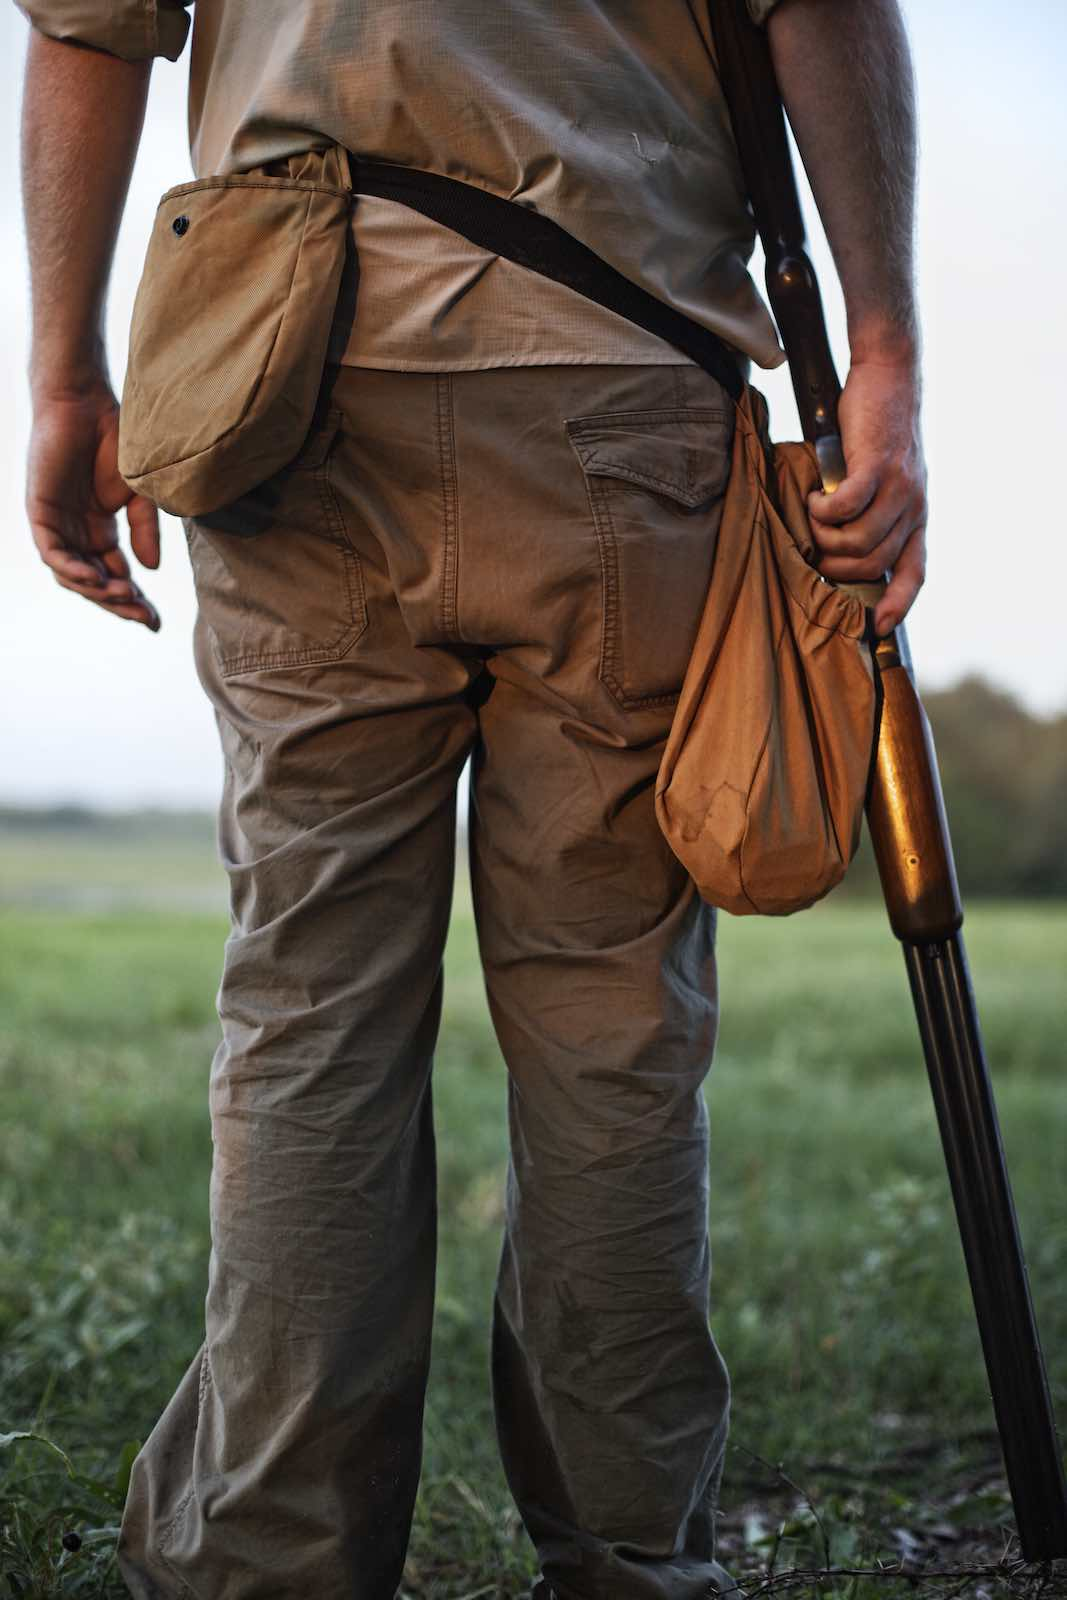 Jody Horton Photography - Hunter standing in grass with his rifle beside his leg.